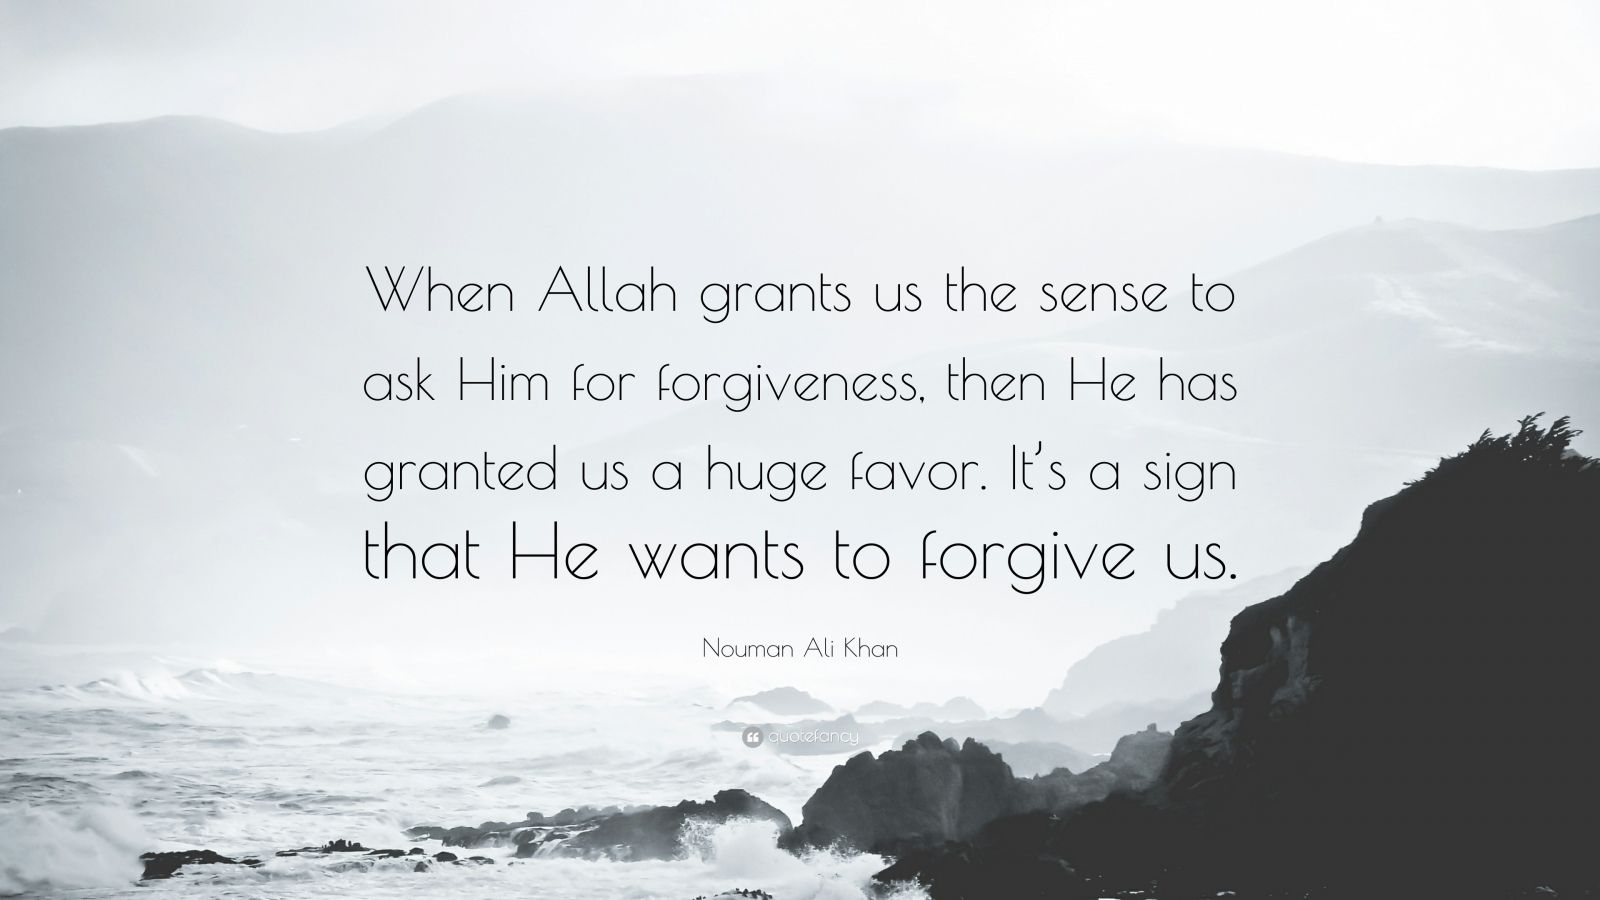 """Nouman Ali Khan Quote: """"When Allah grants us the sense to ask Him for forgiveness, then He has granted us a huge favor. It's a sign that He wants to forgive us."""""""